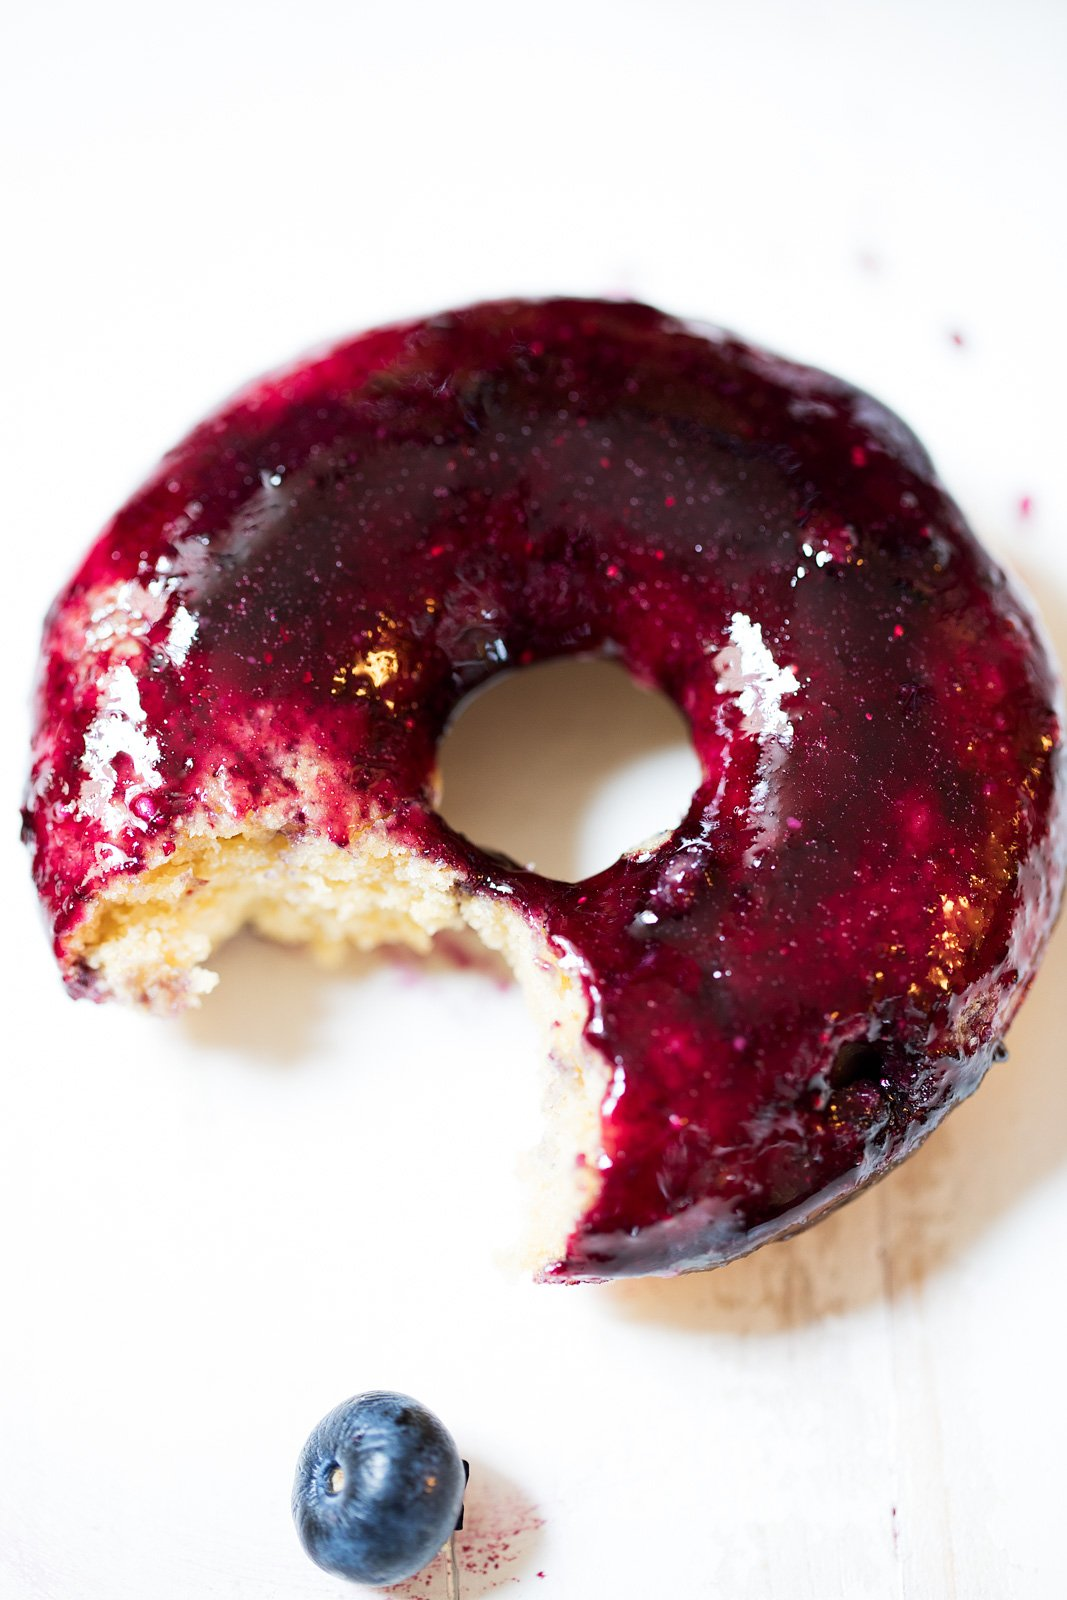 Almond Blueberry Glazed Donuts -- a healthier baked donuts made with a mix of almond and whole grain flour, then dipped in an easy homemade blueberry glaze.